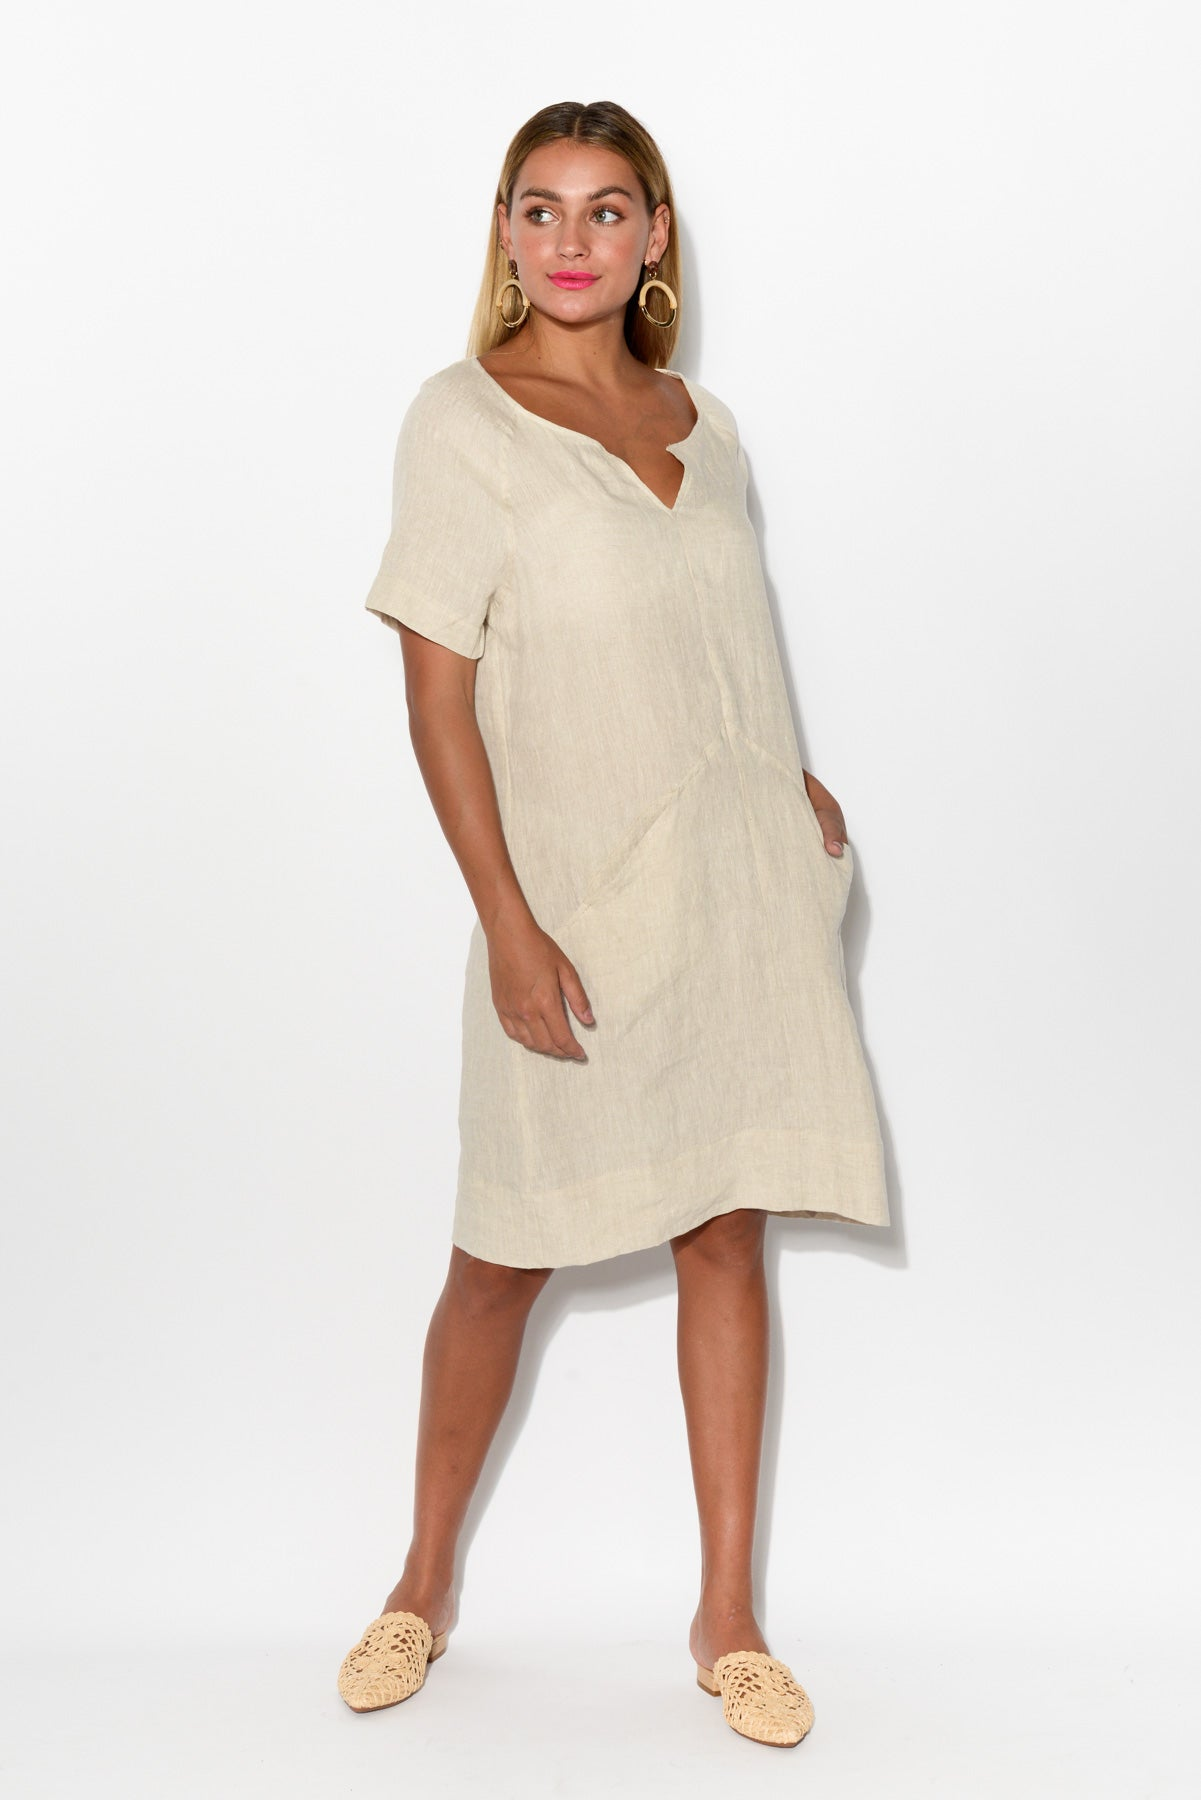 Valerie Natural Linen Dress - Blue Bungalow